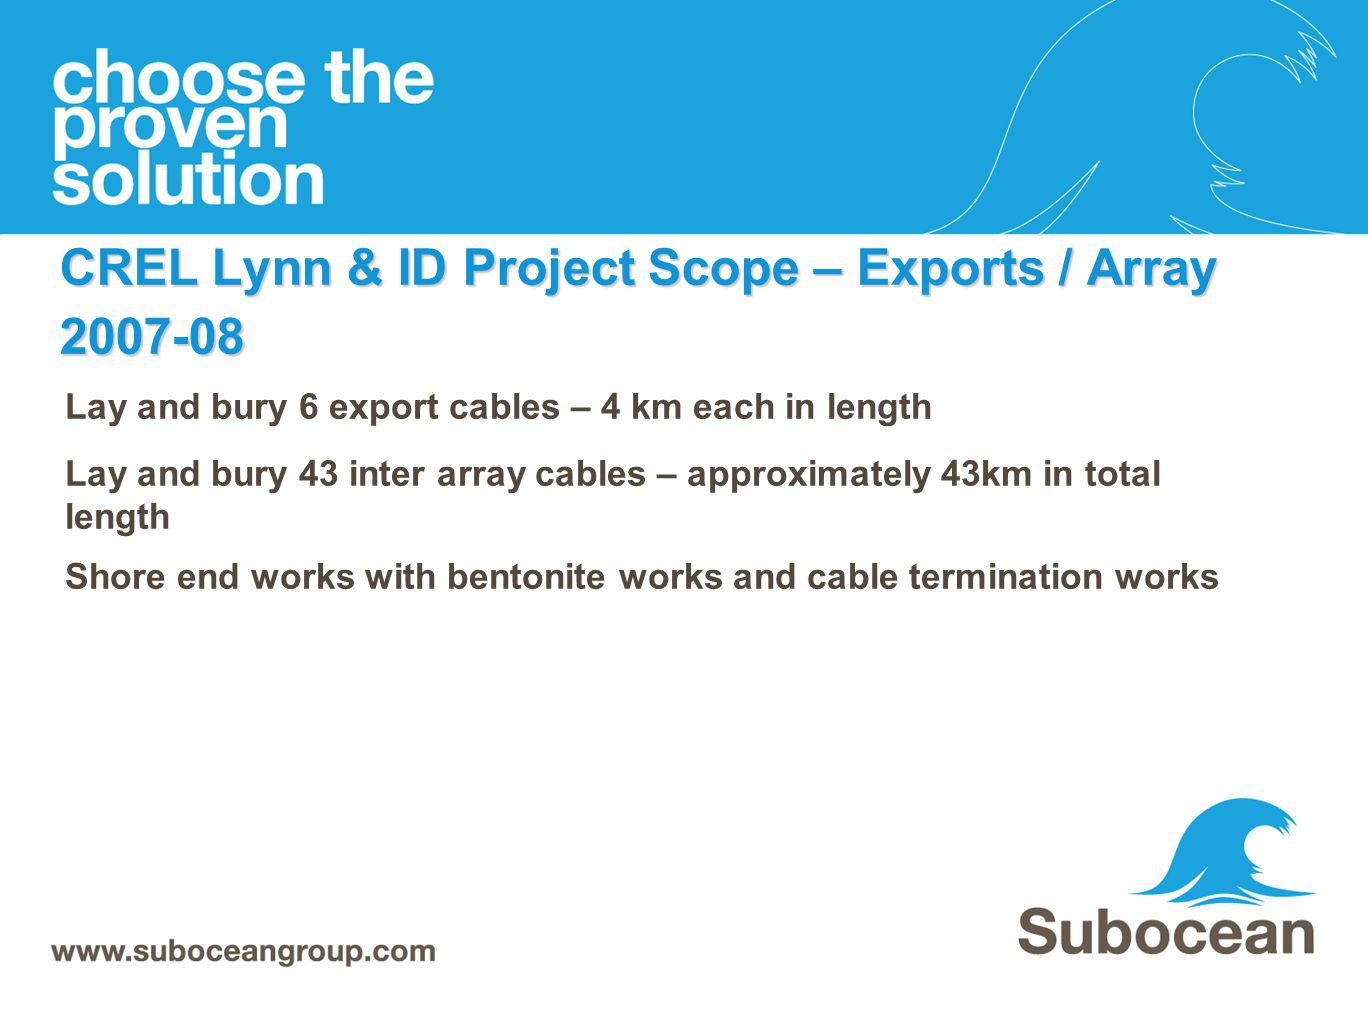 CREL Lynn & ID Project Scope – Exports / Array 2007-08 Lay and bury 6 export cables – 4 km each in length Lay and bury 43 inter array cables – approxi